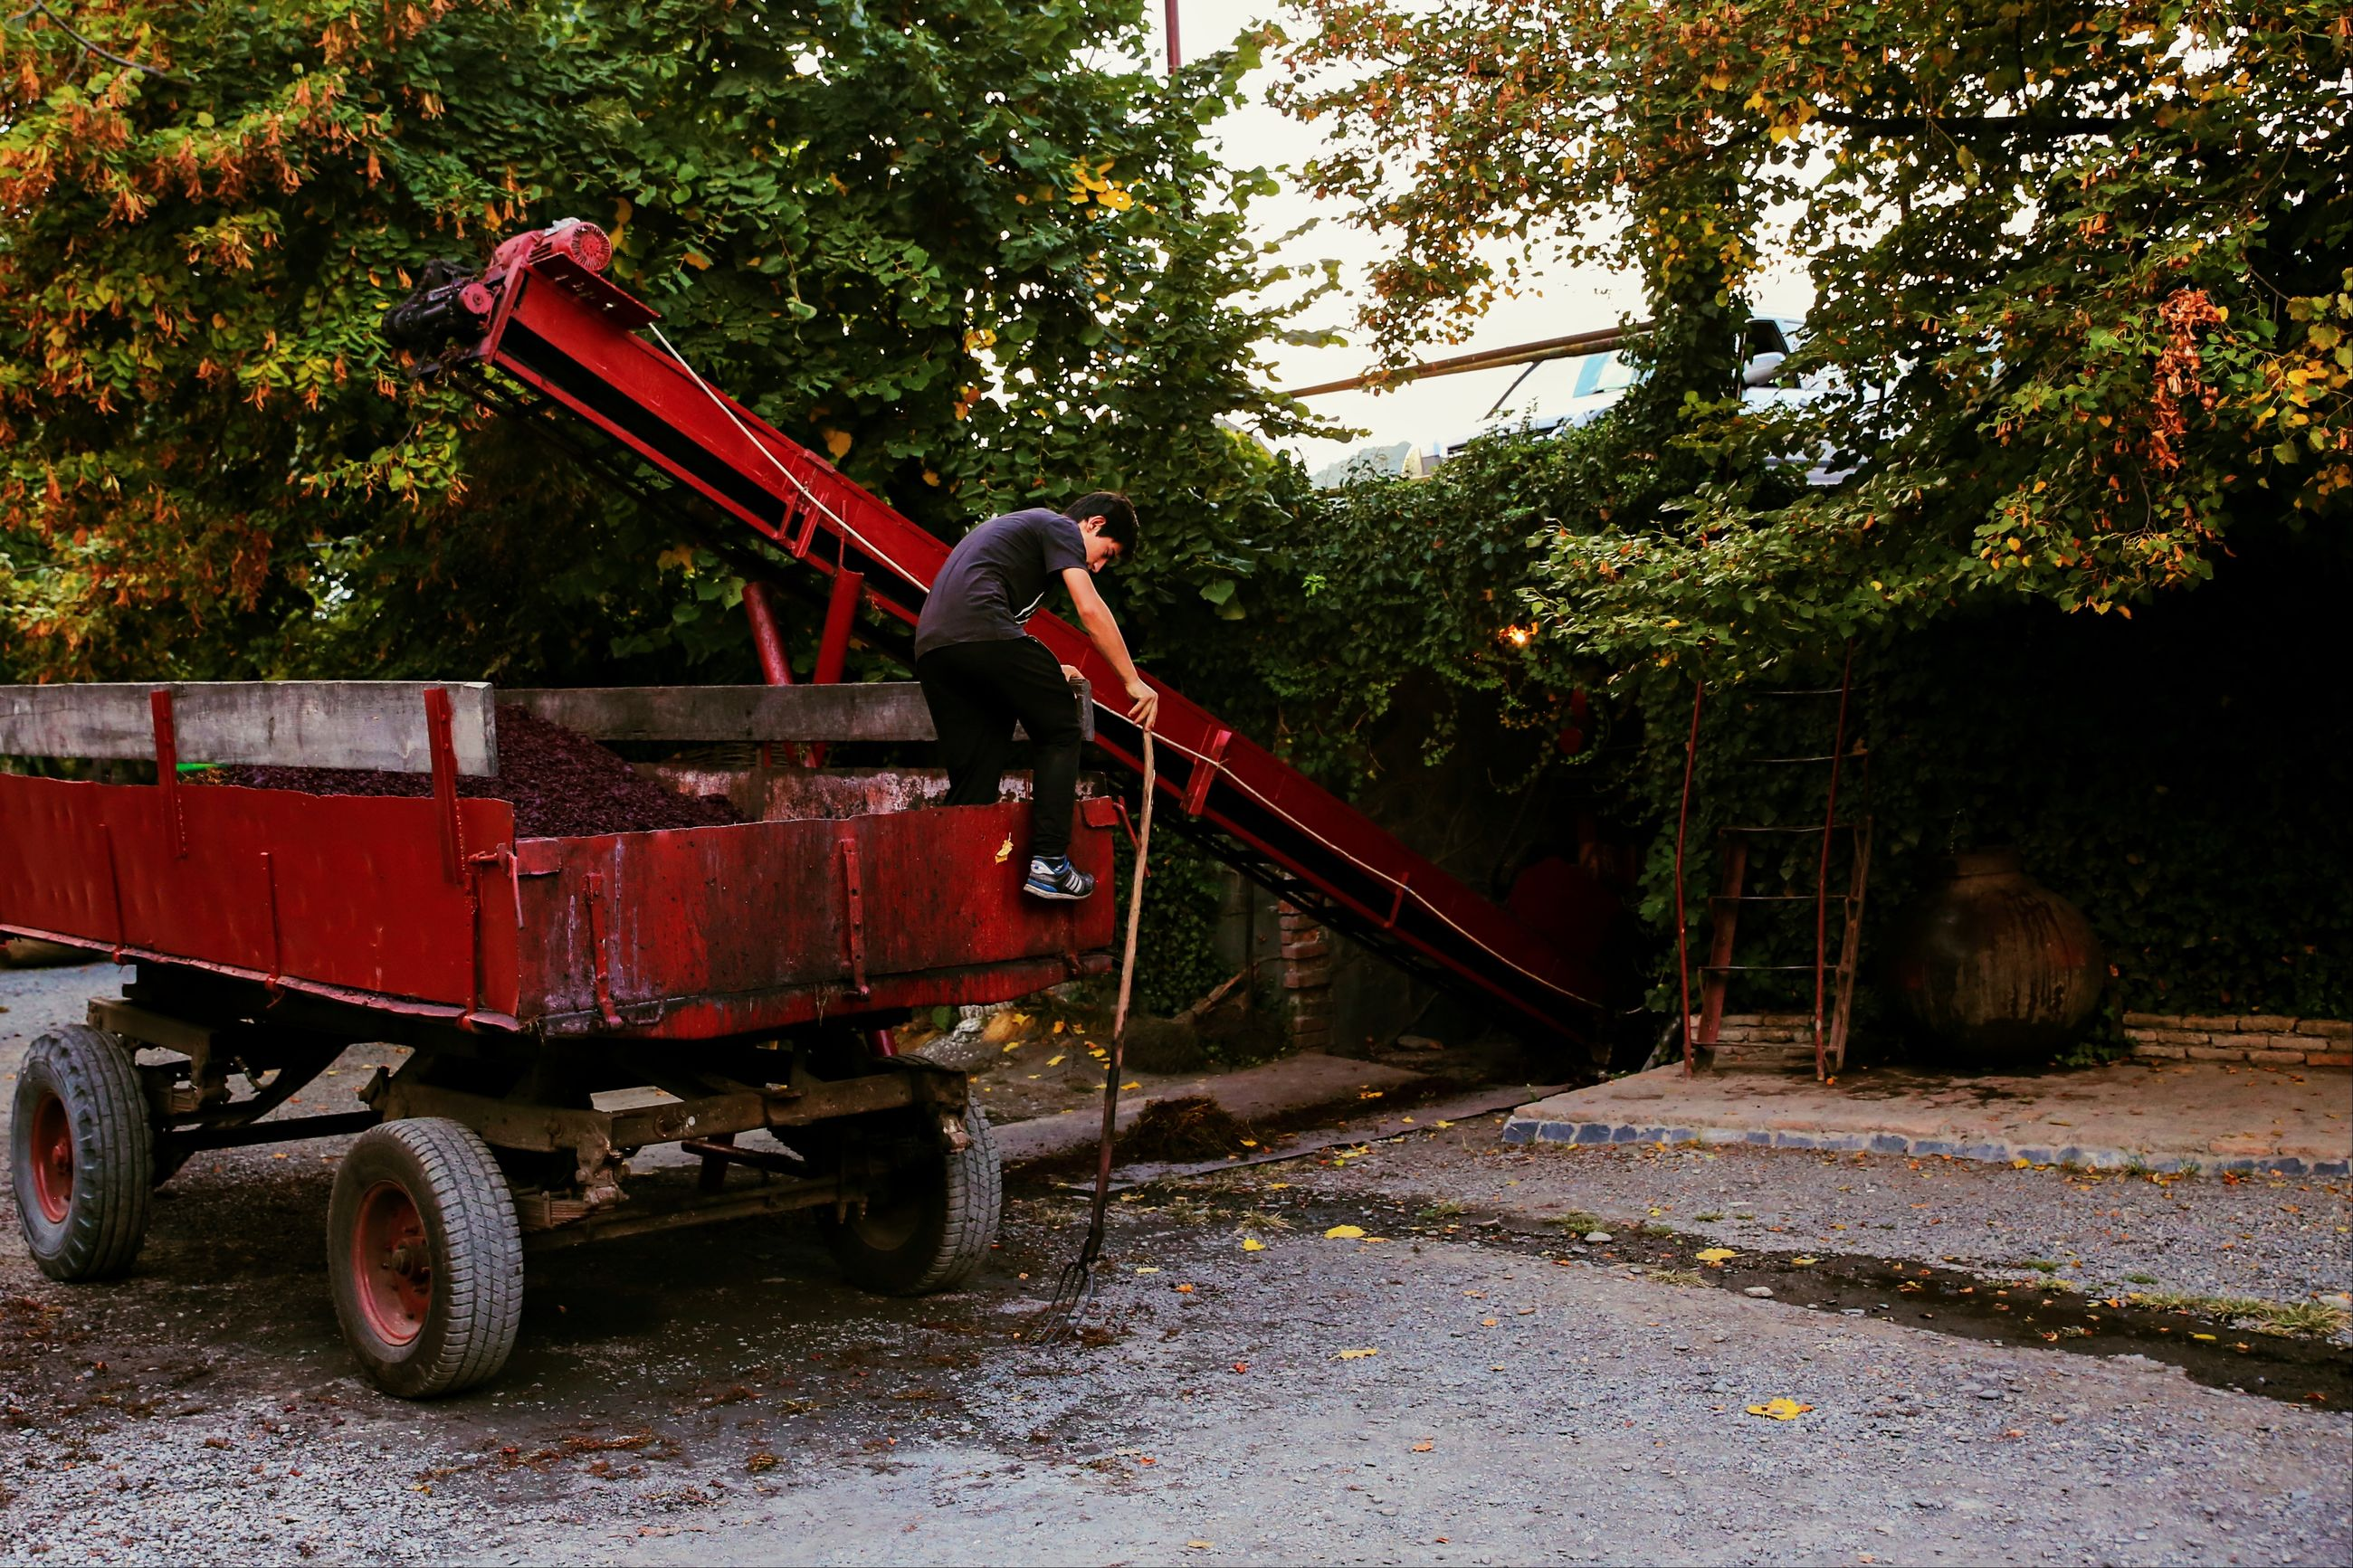 tree, land vehicle, transportation, mode of transport, outdoors, commercial land vehicle, no people, nature, day